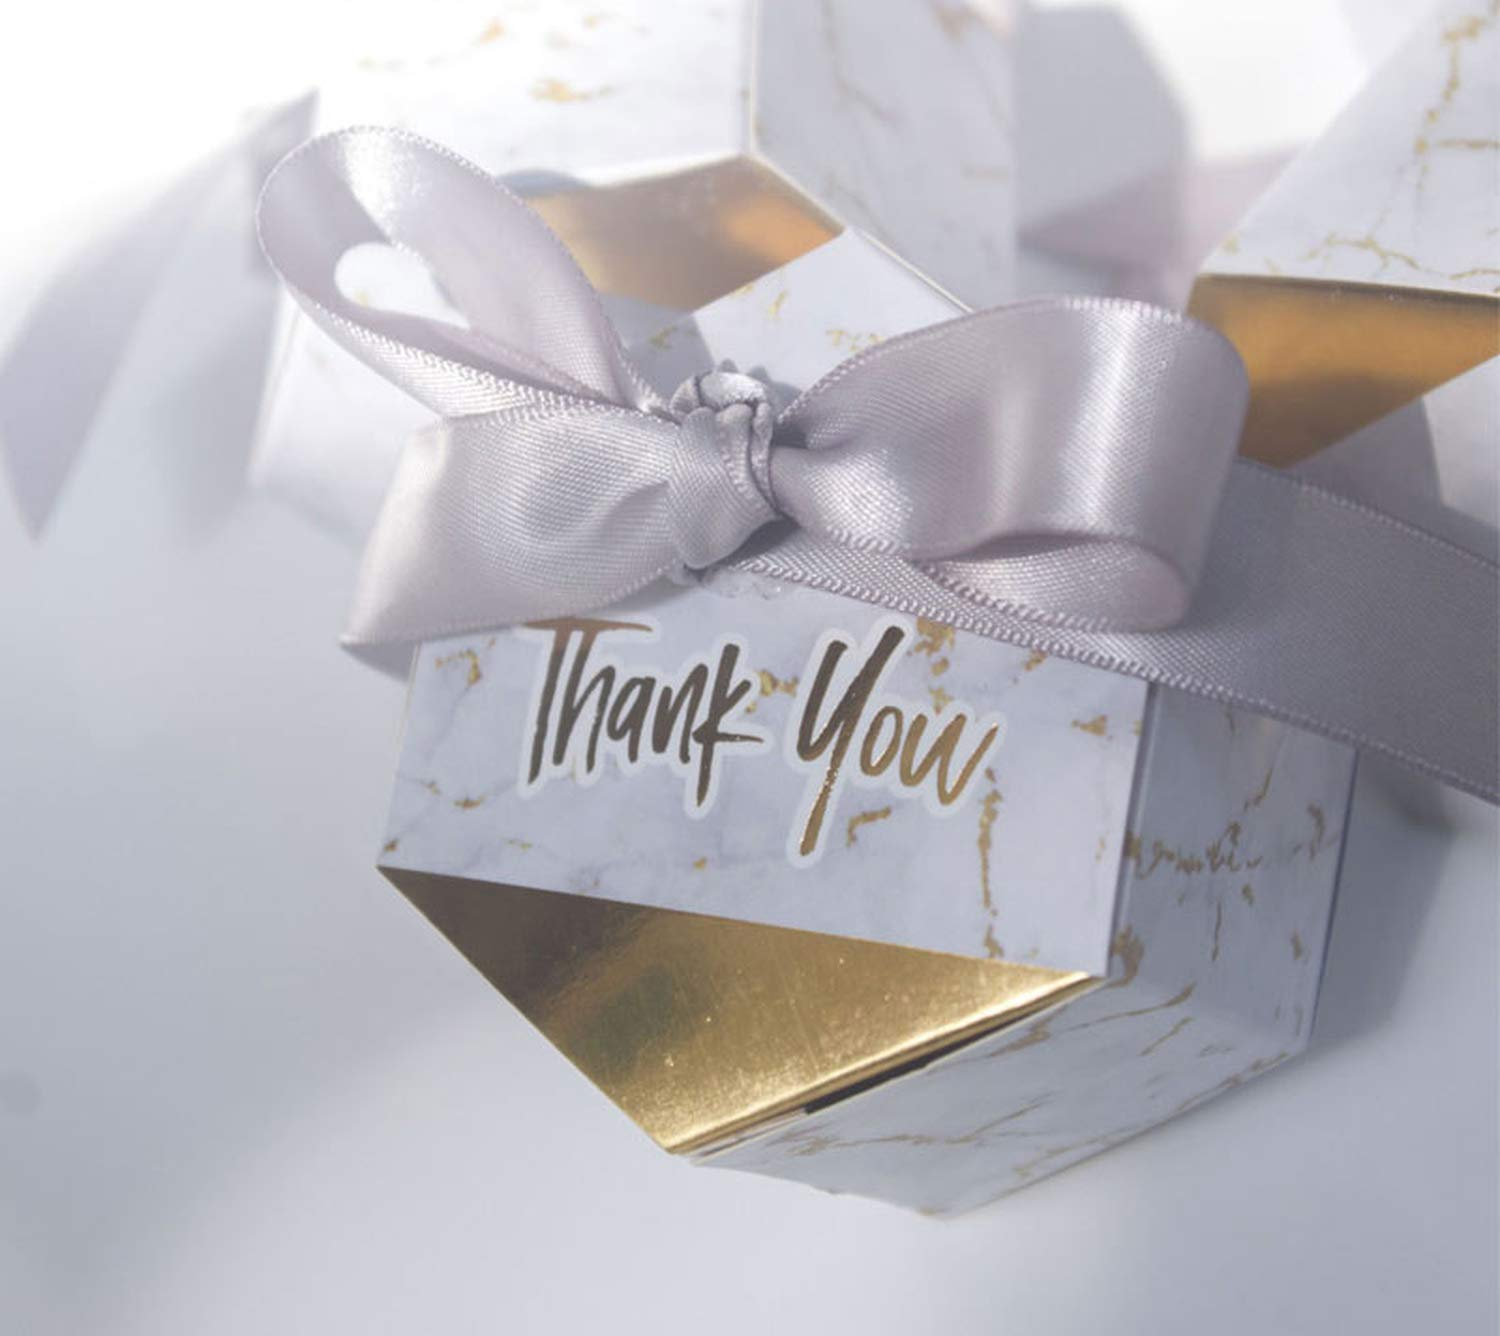 30 Baby Shower Thank You Gift Boxes Personalized Gold Foil Favor Boxes Xmas Gift